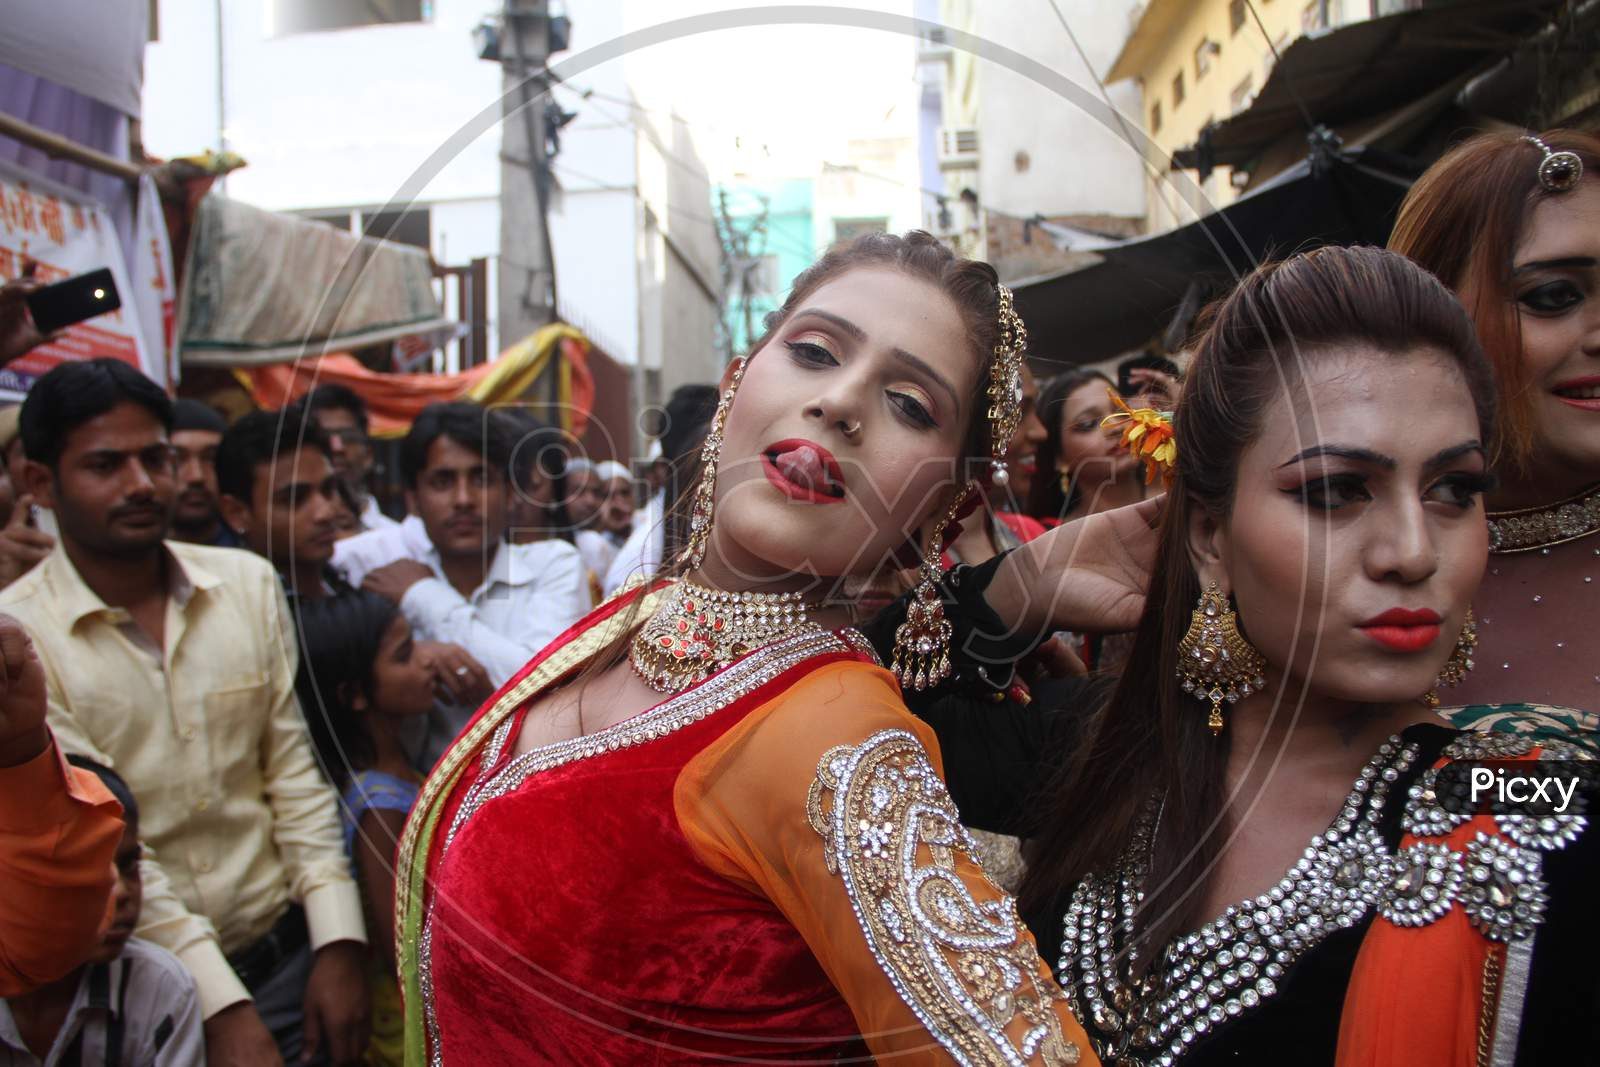 Indian Eunuchs Dance At A Procession During The Urs Festival, At The Shrine Of Sufi Saint Khwaja Moinuddin Chishti In Ajmer, India. Thousands Of Sufi Devotees From Different Parts Of India Travel To The Shrine For The Annual Festival, Marking The Death Anniversary Of The Saint.